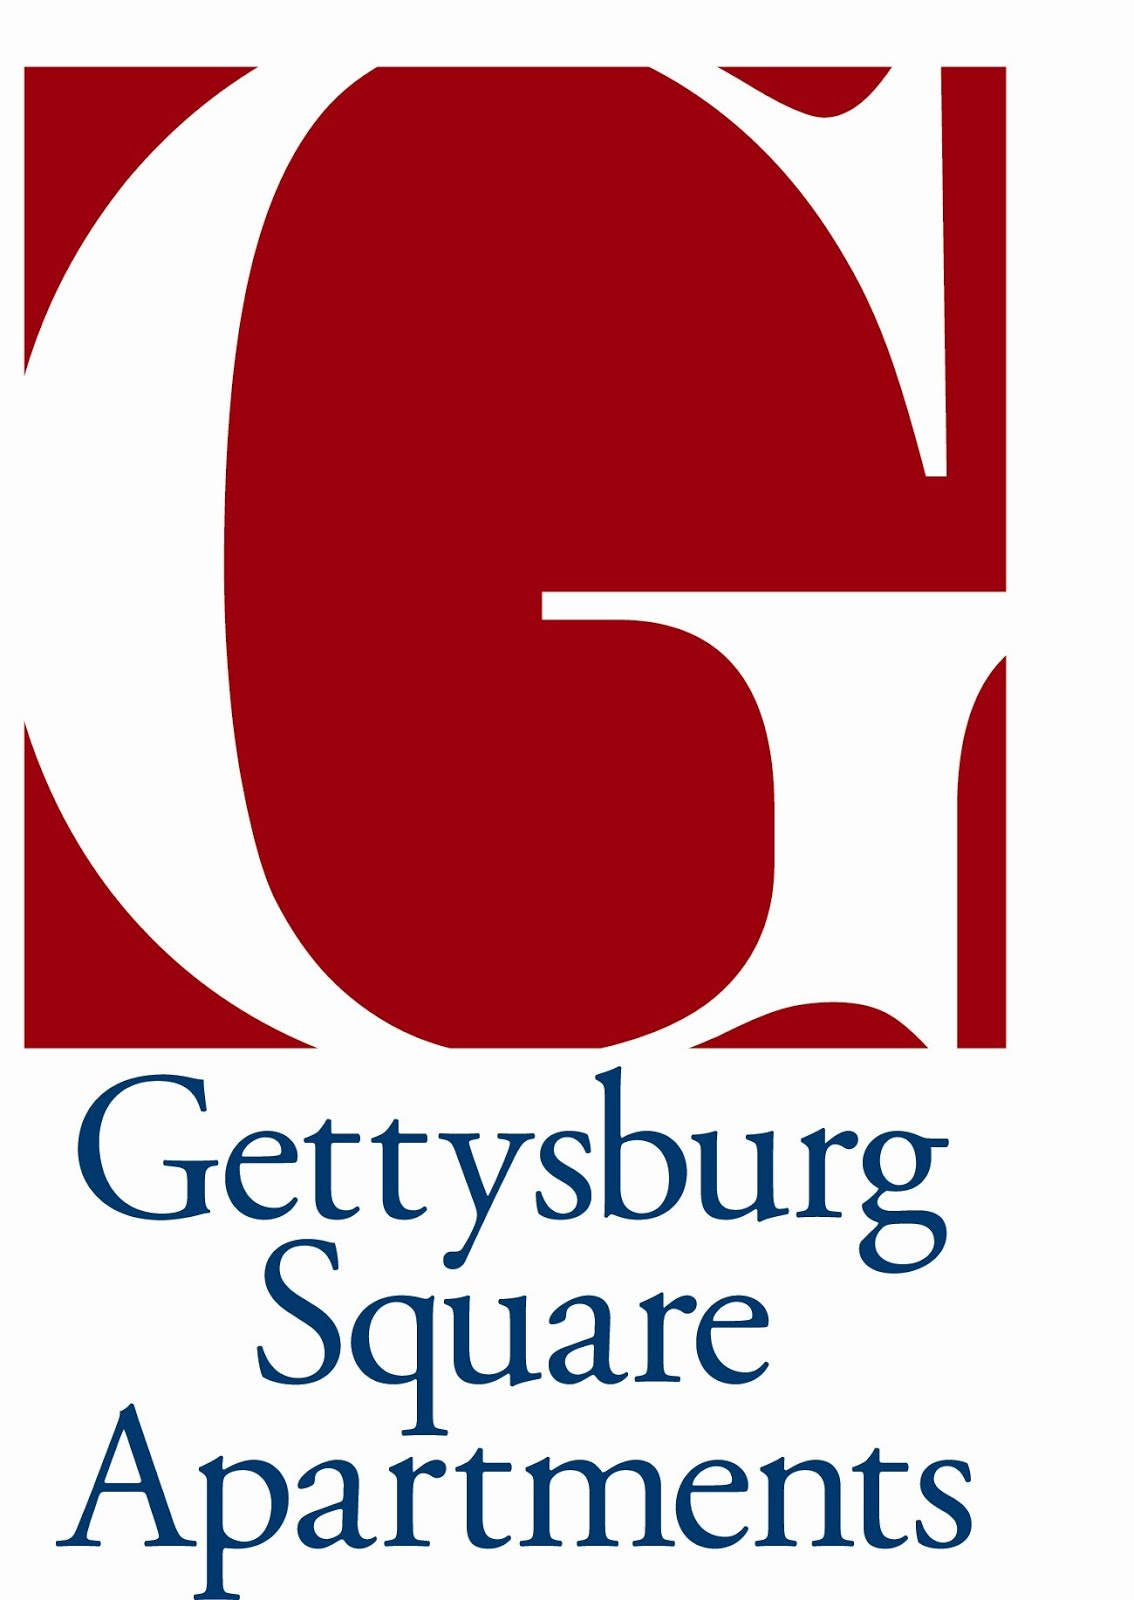 Gettysburg Square Apartments